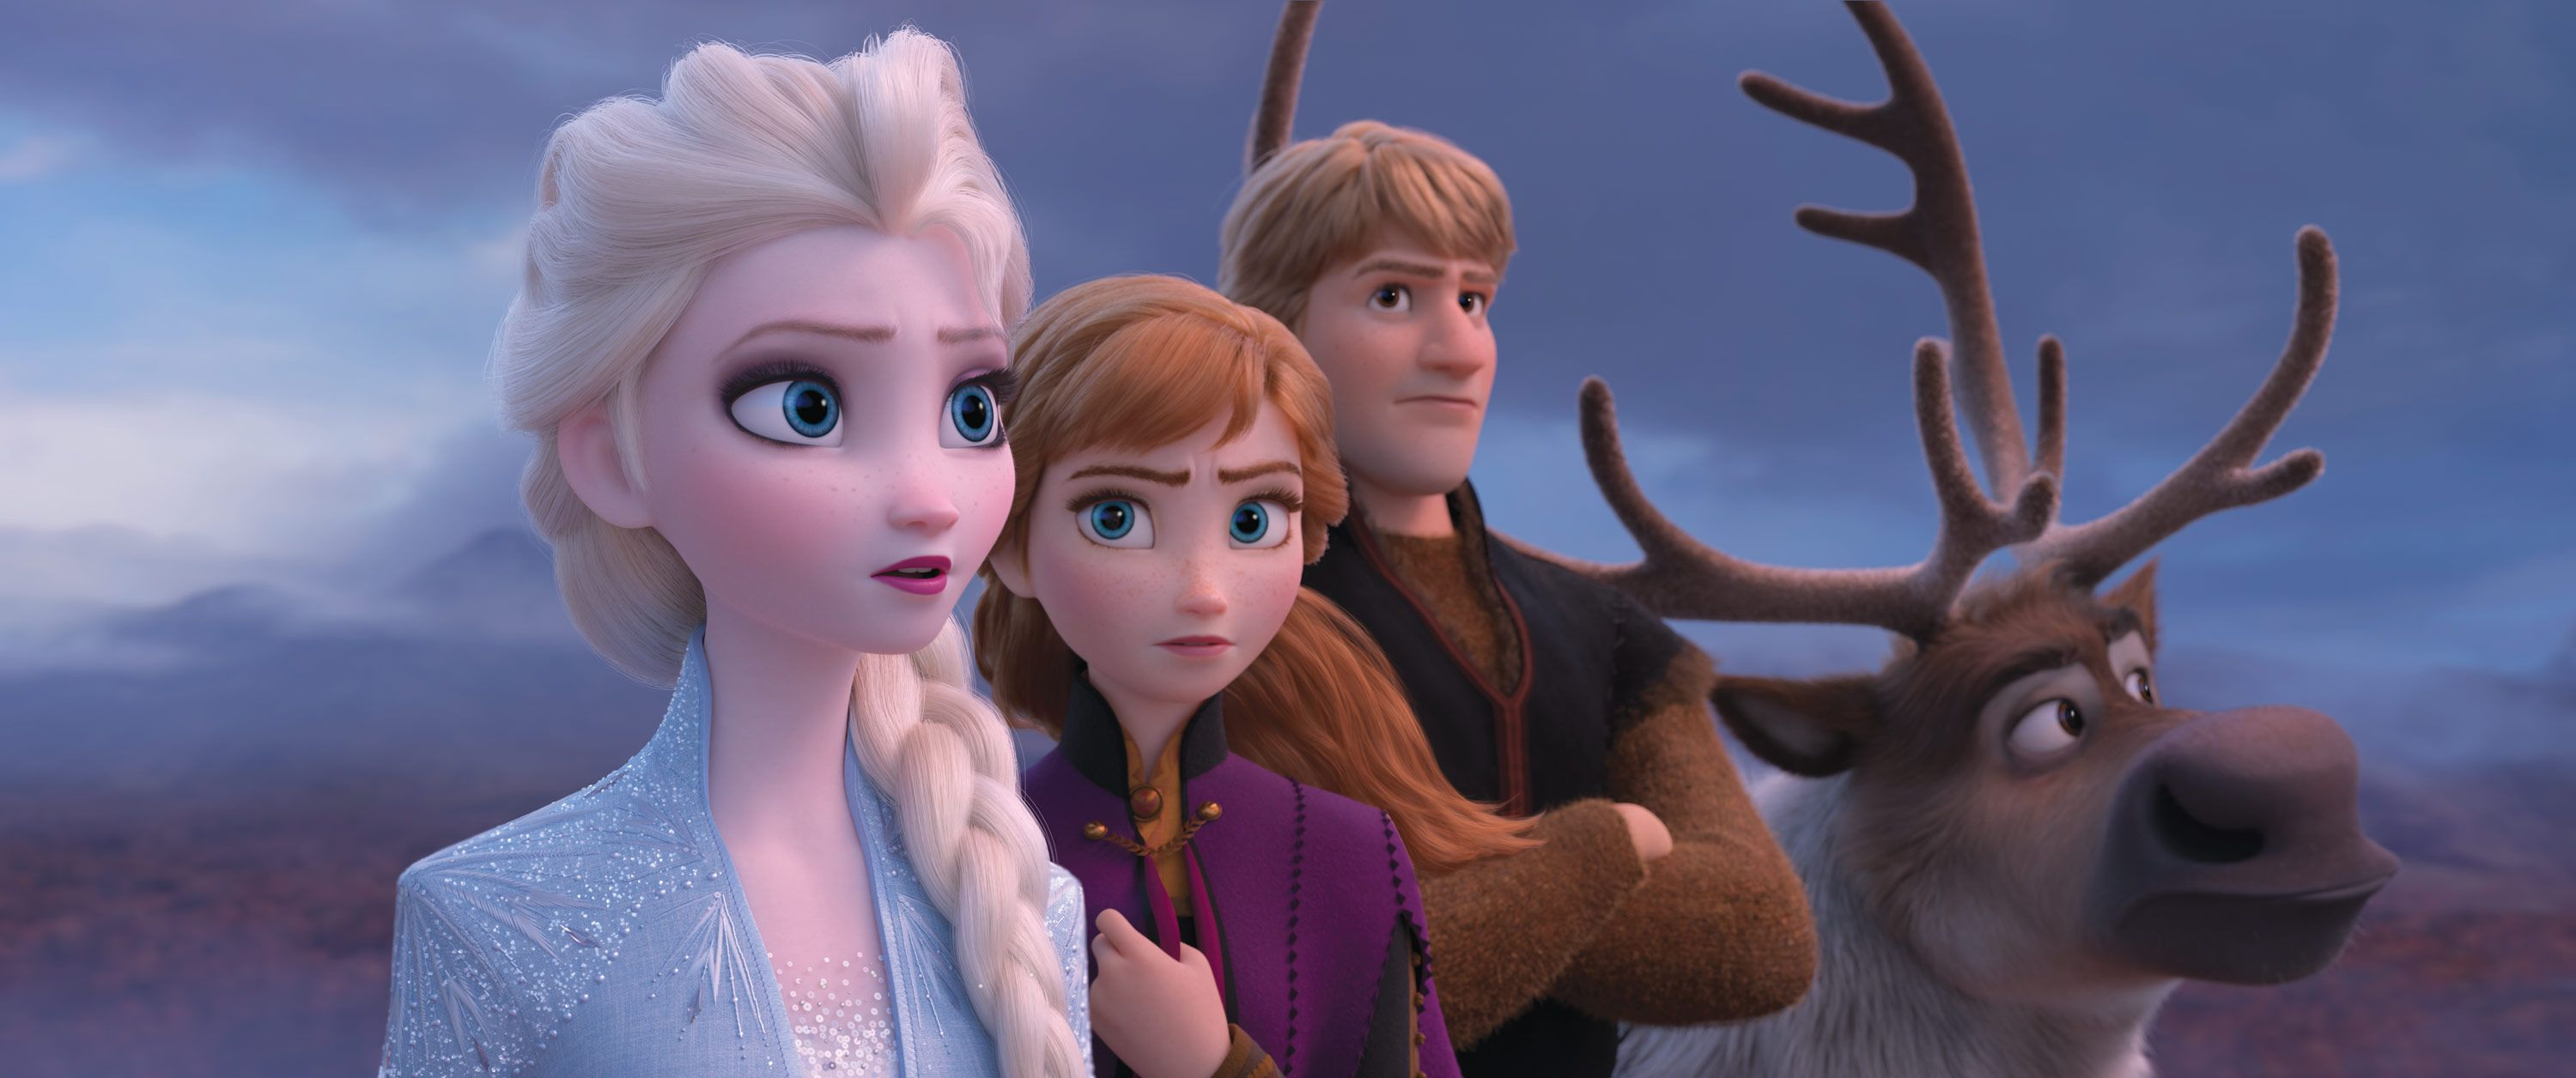 e987b6639e5f6 Frozen 2 trailer, plot, release date, cast